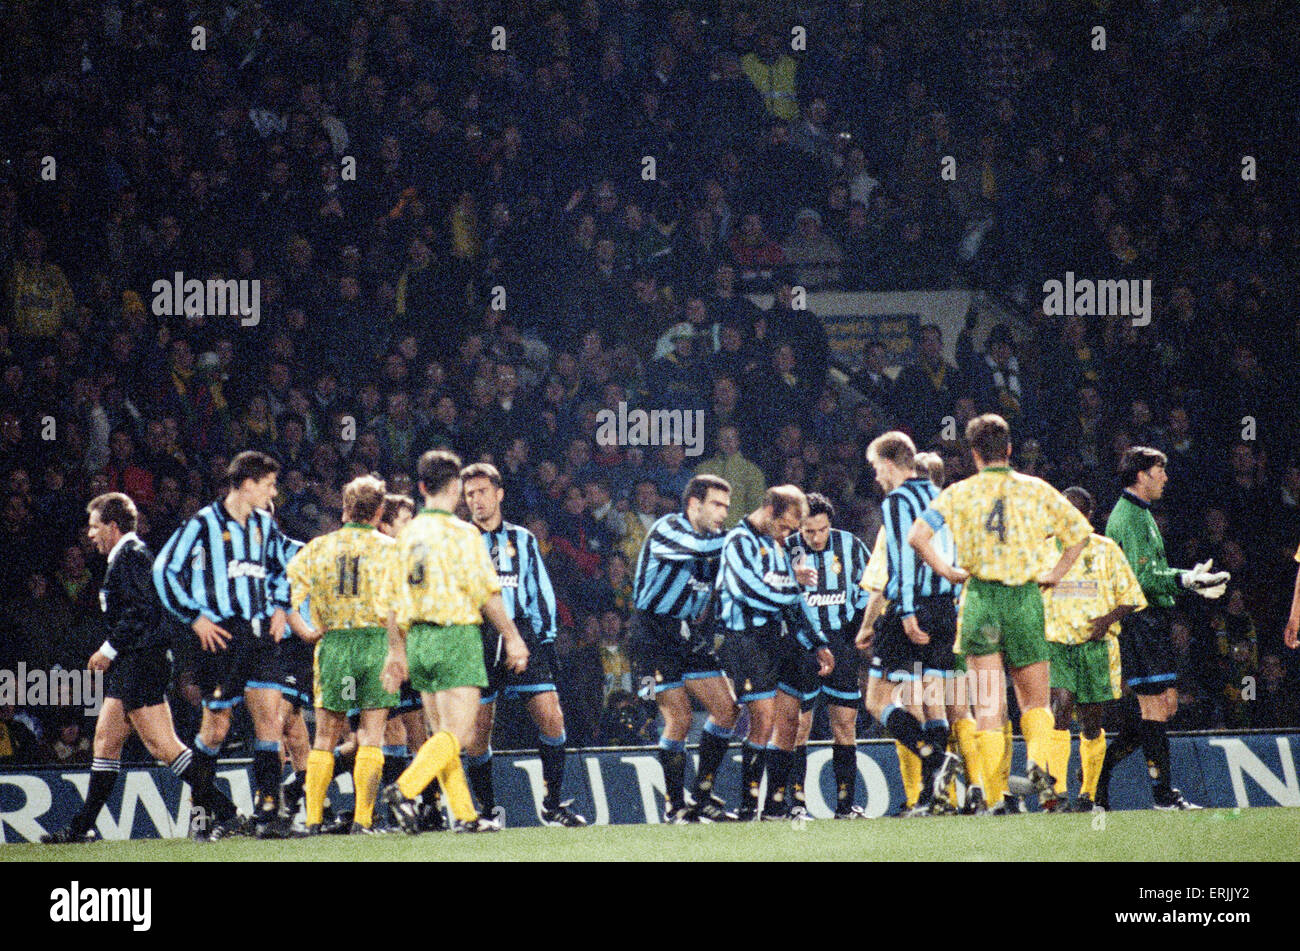 Norwich City 0 v Inter Milan 1 UEFA Cup Round 16 first leg at Bramall Lane. Inter Milan won one nil courtesy of - Stock Image